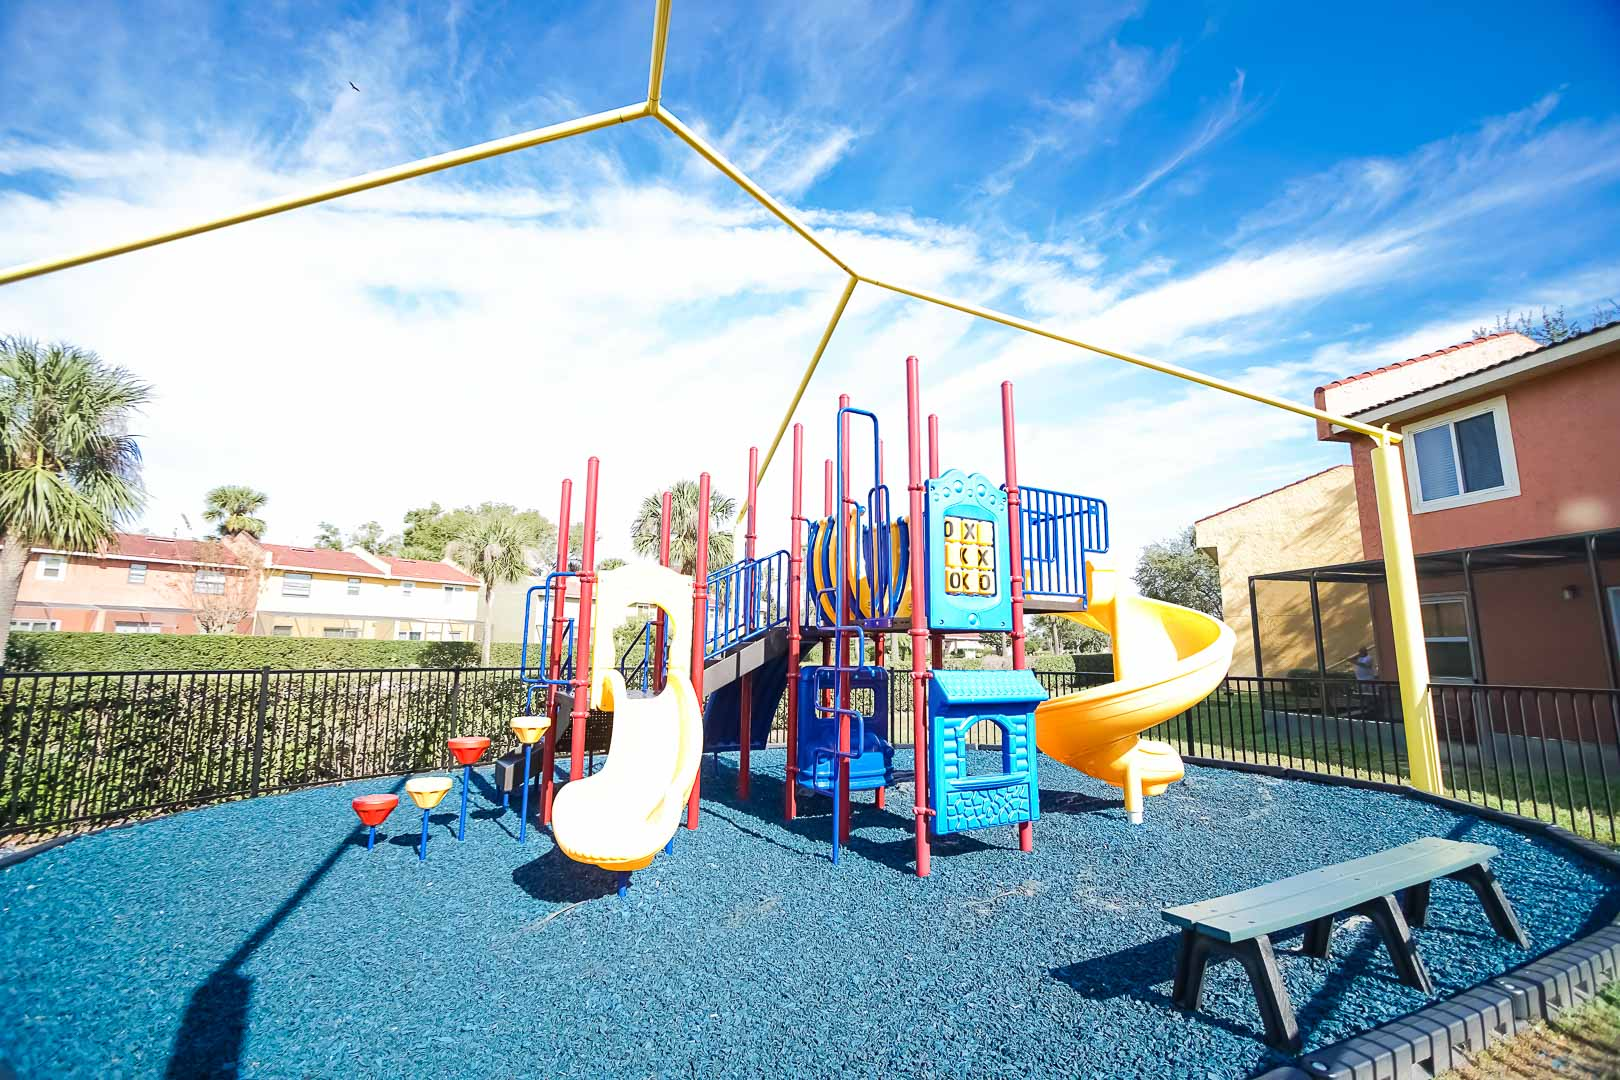 A colorful playground area at VRI's Fantasy World Resort in Florida.